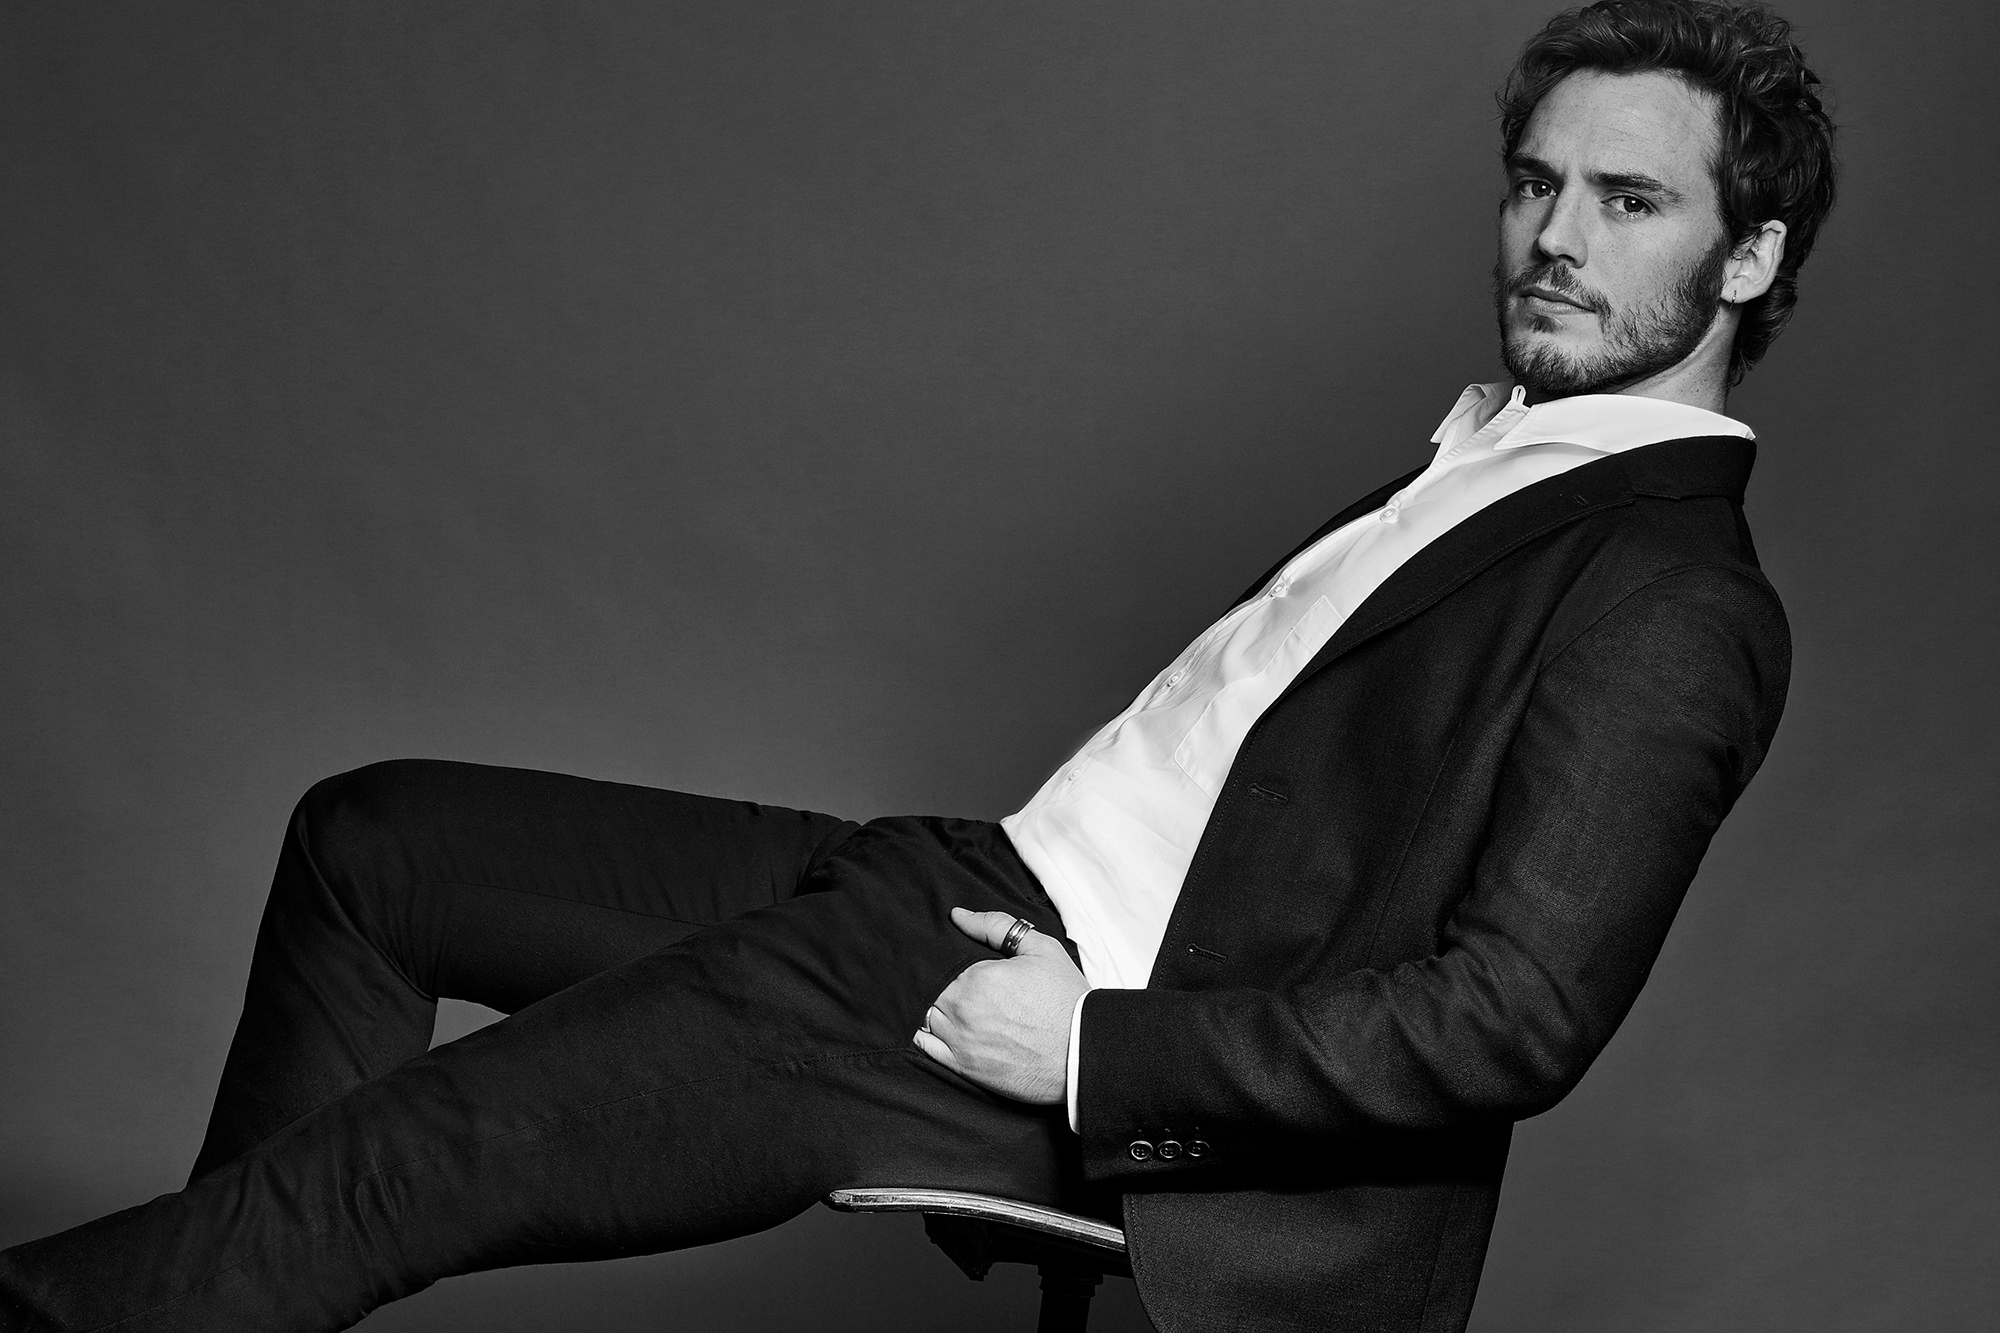 Sam Claflin Wallpapers High Resolution and Quality Download: wallpapersdsc.net/celebrities/sam-claflin-17522.html